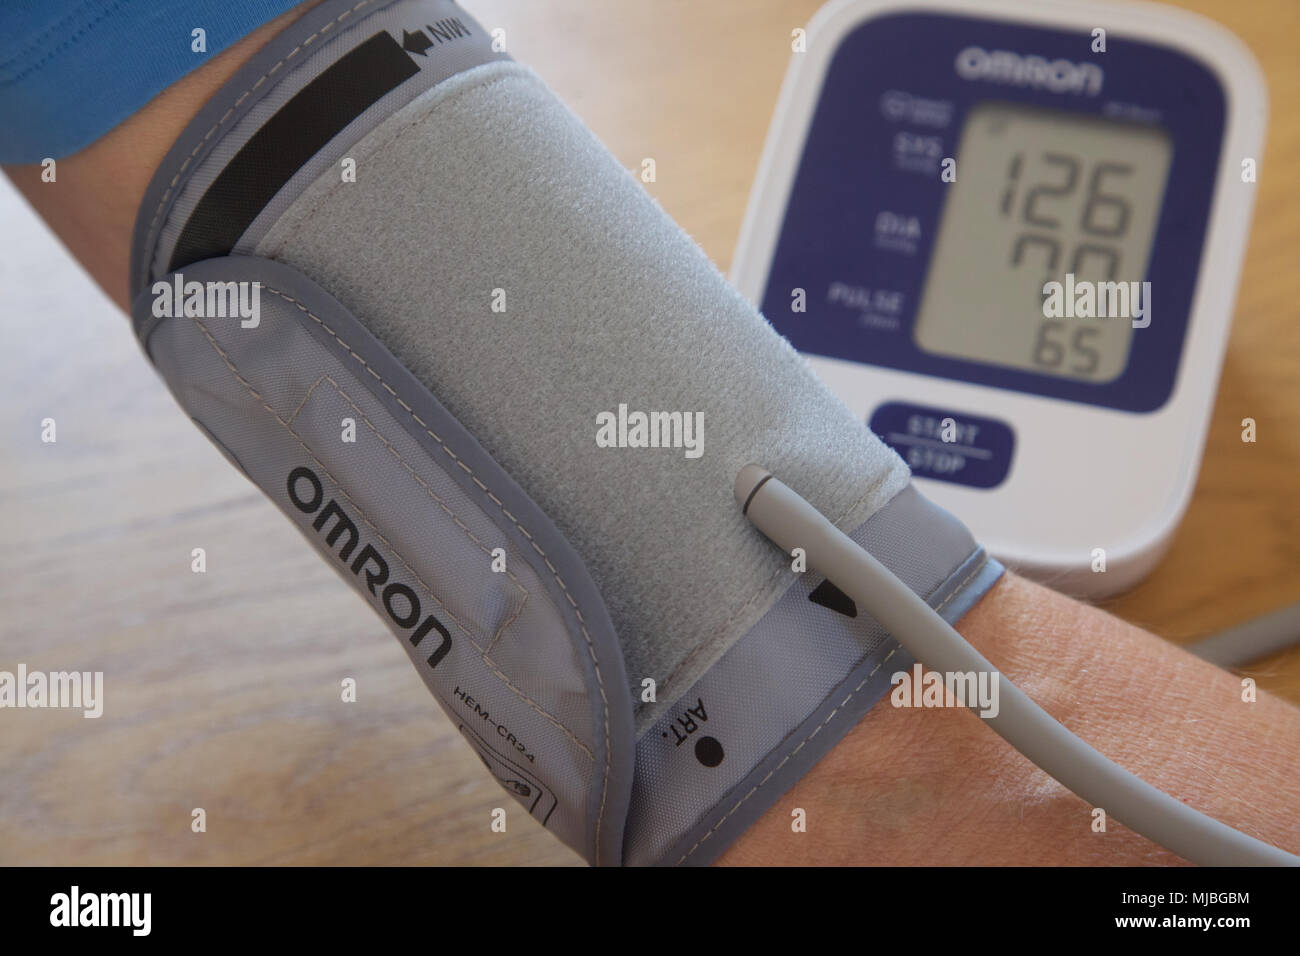 A blood pressure machine for home use. - Stock Image